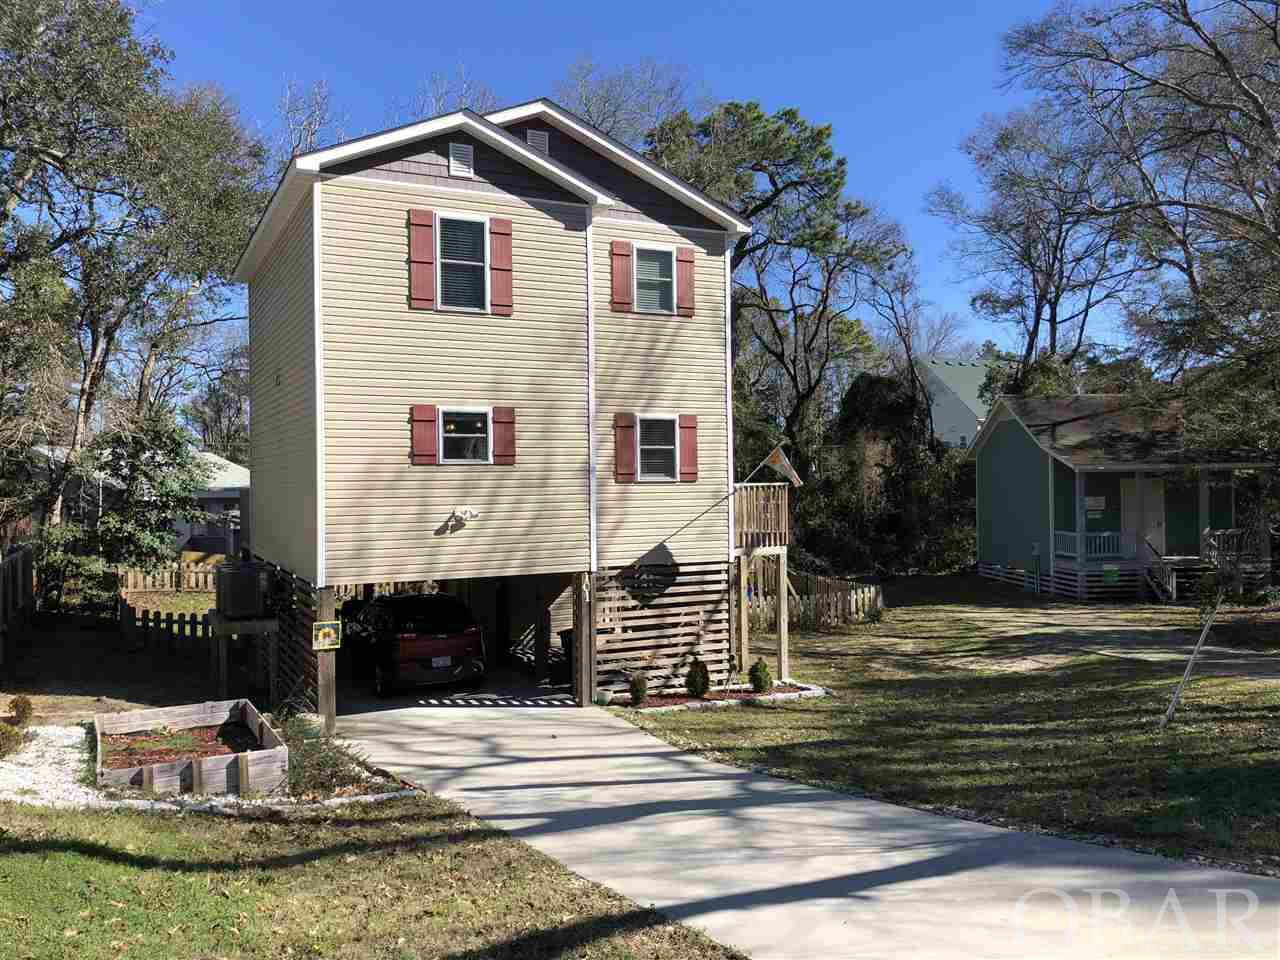 Dare Court, Kill Devil Hills, NC 27948, 3 Bedrooms Bedrooms, ,2 BathroomsBathrooms,Residential,For sale,Dare Court,103848